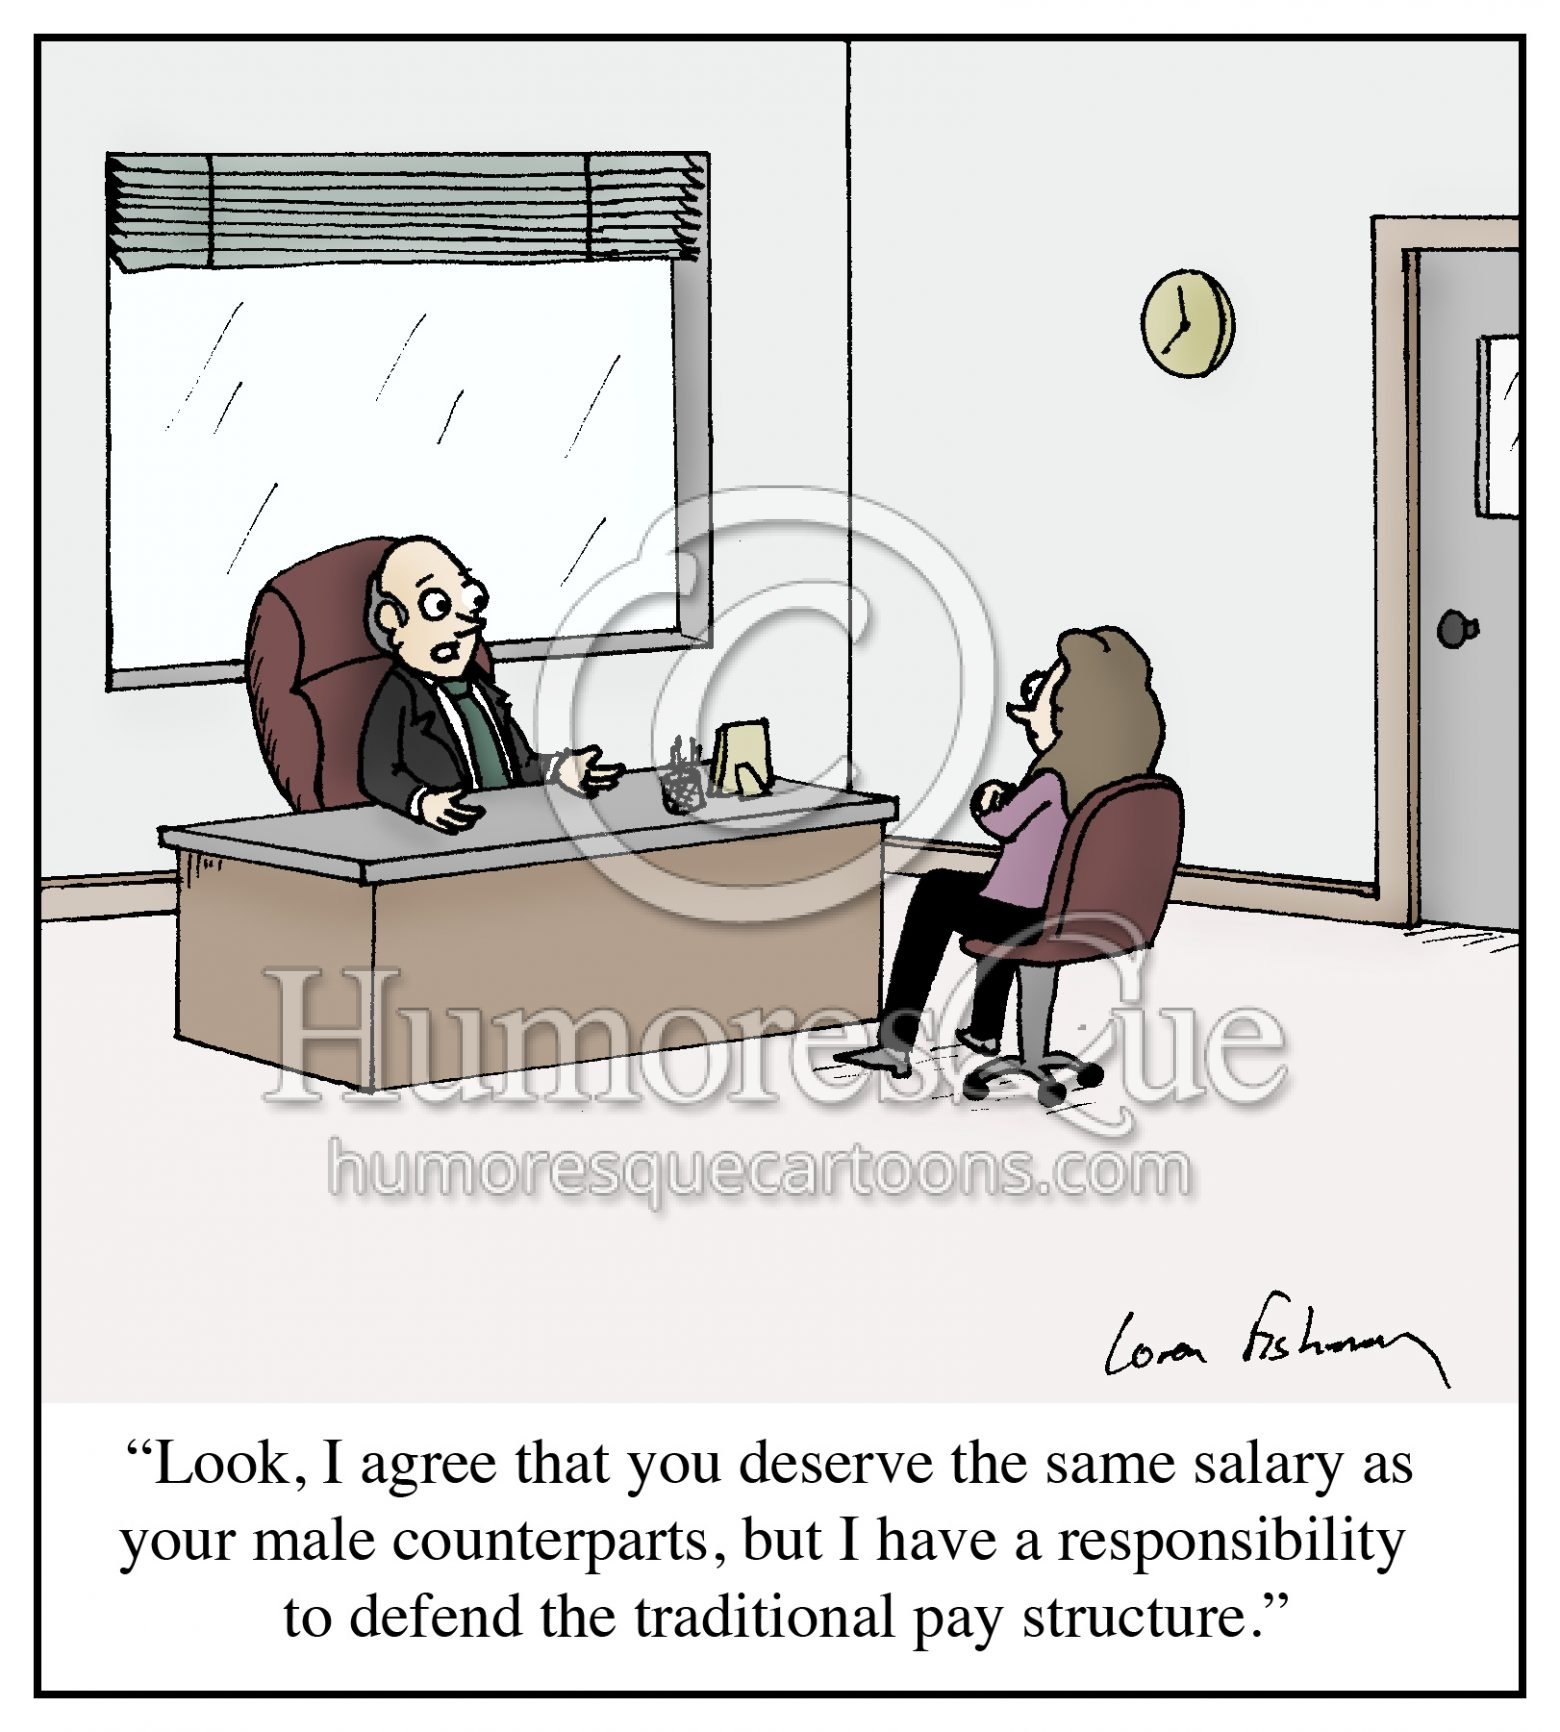 equal pay for women sexism in business cartoon